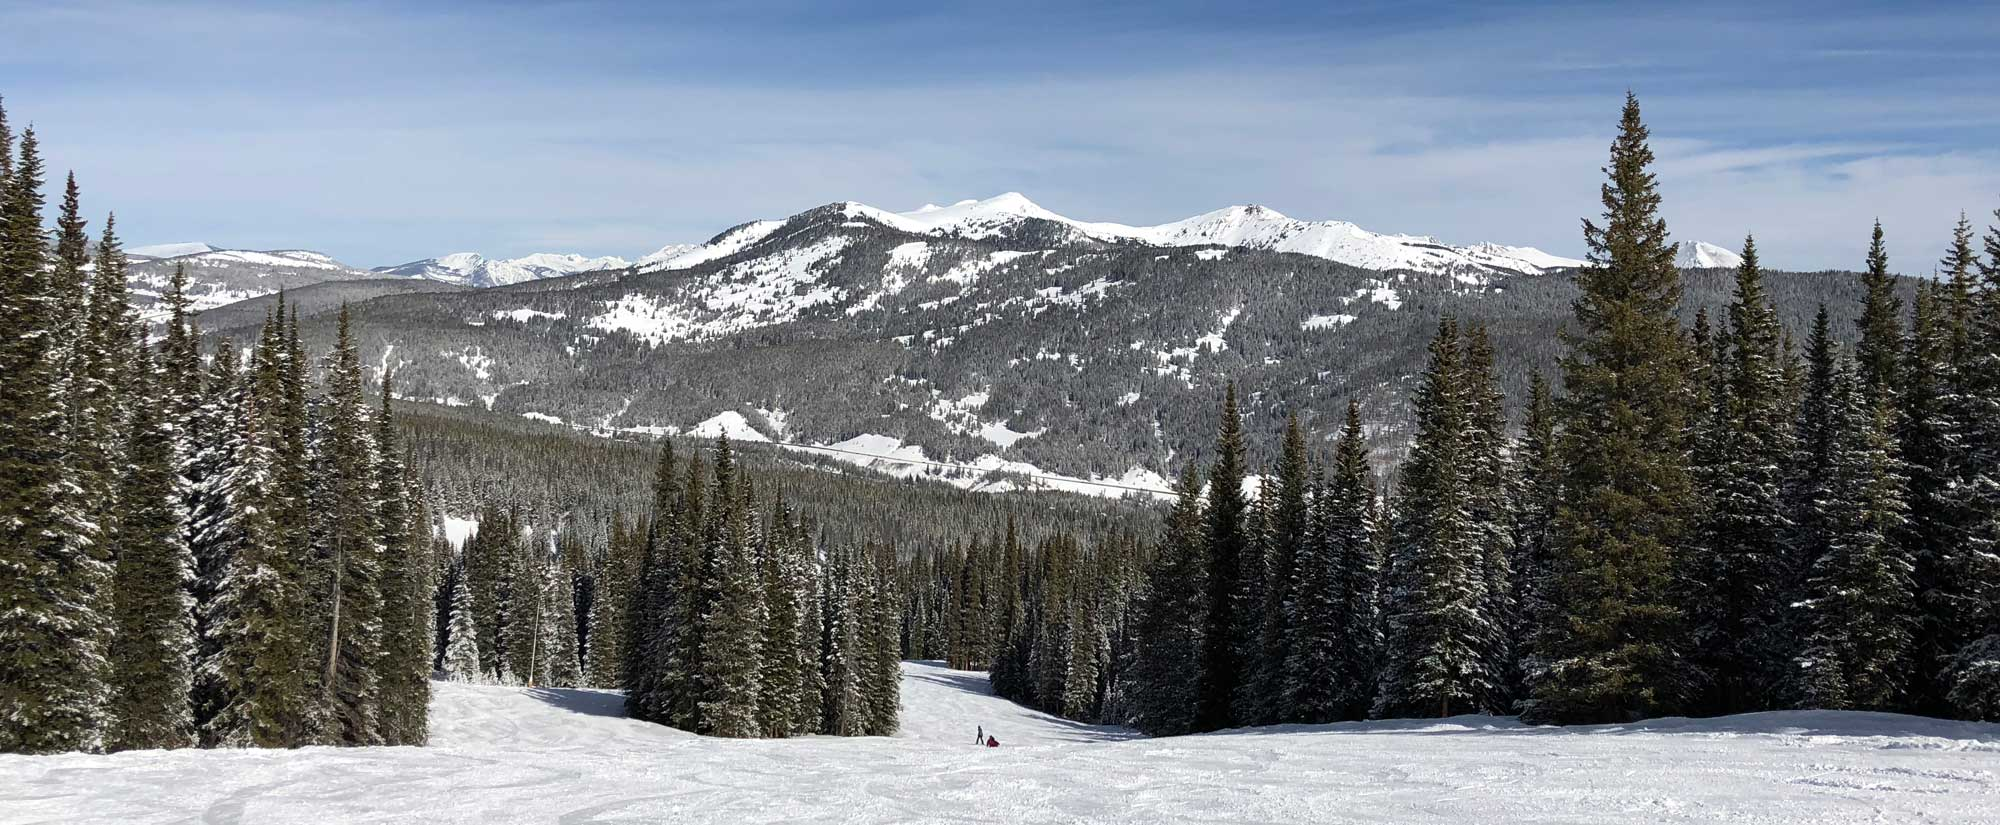 Reasons to Take a Copper Mountain Family Ski Vacation